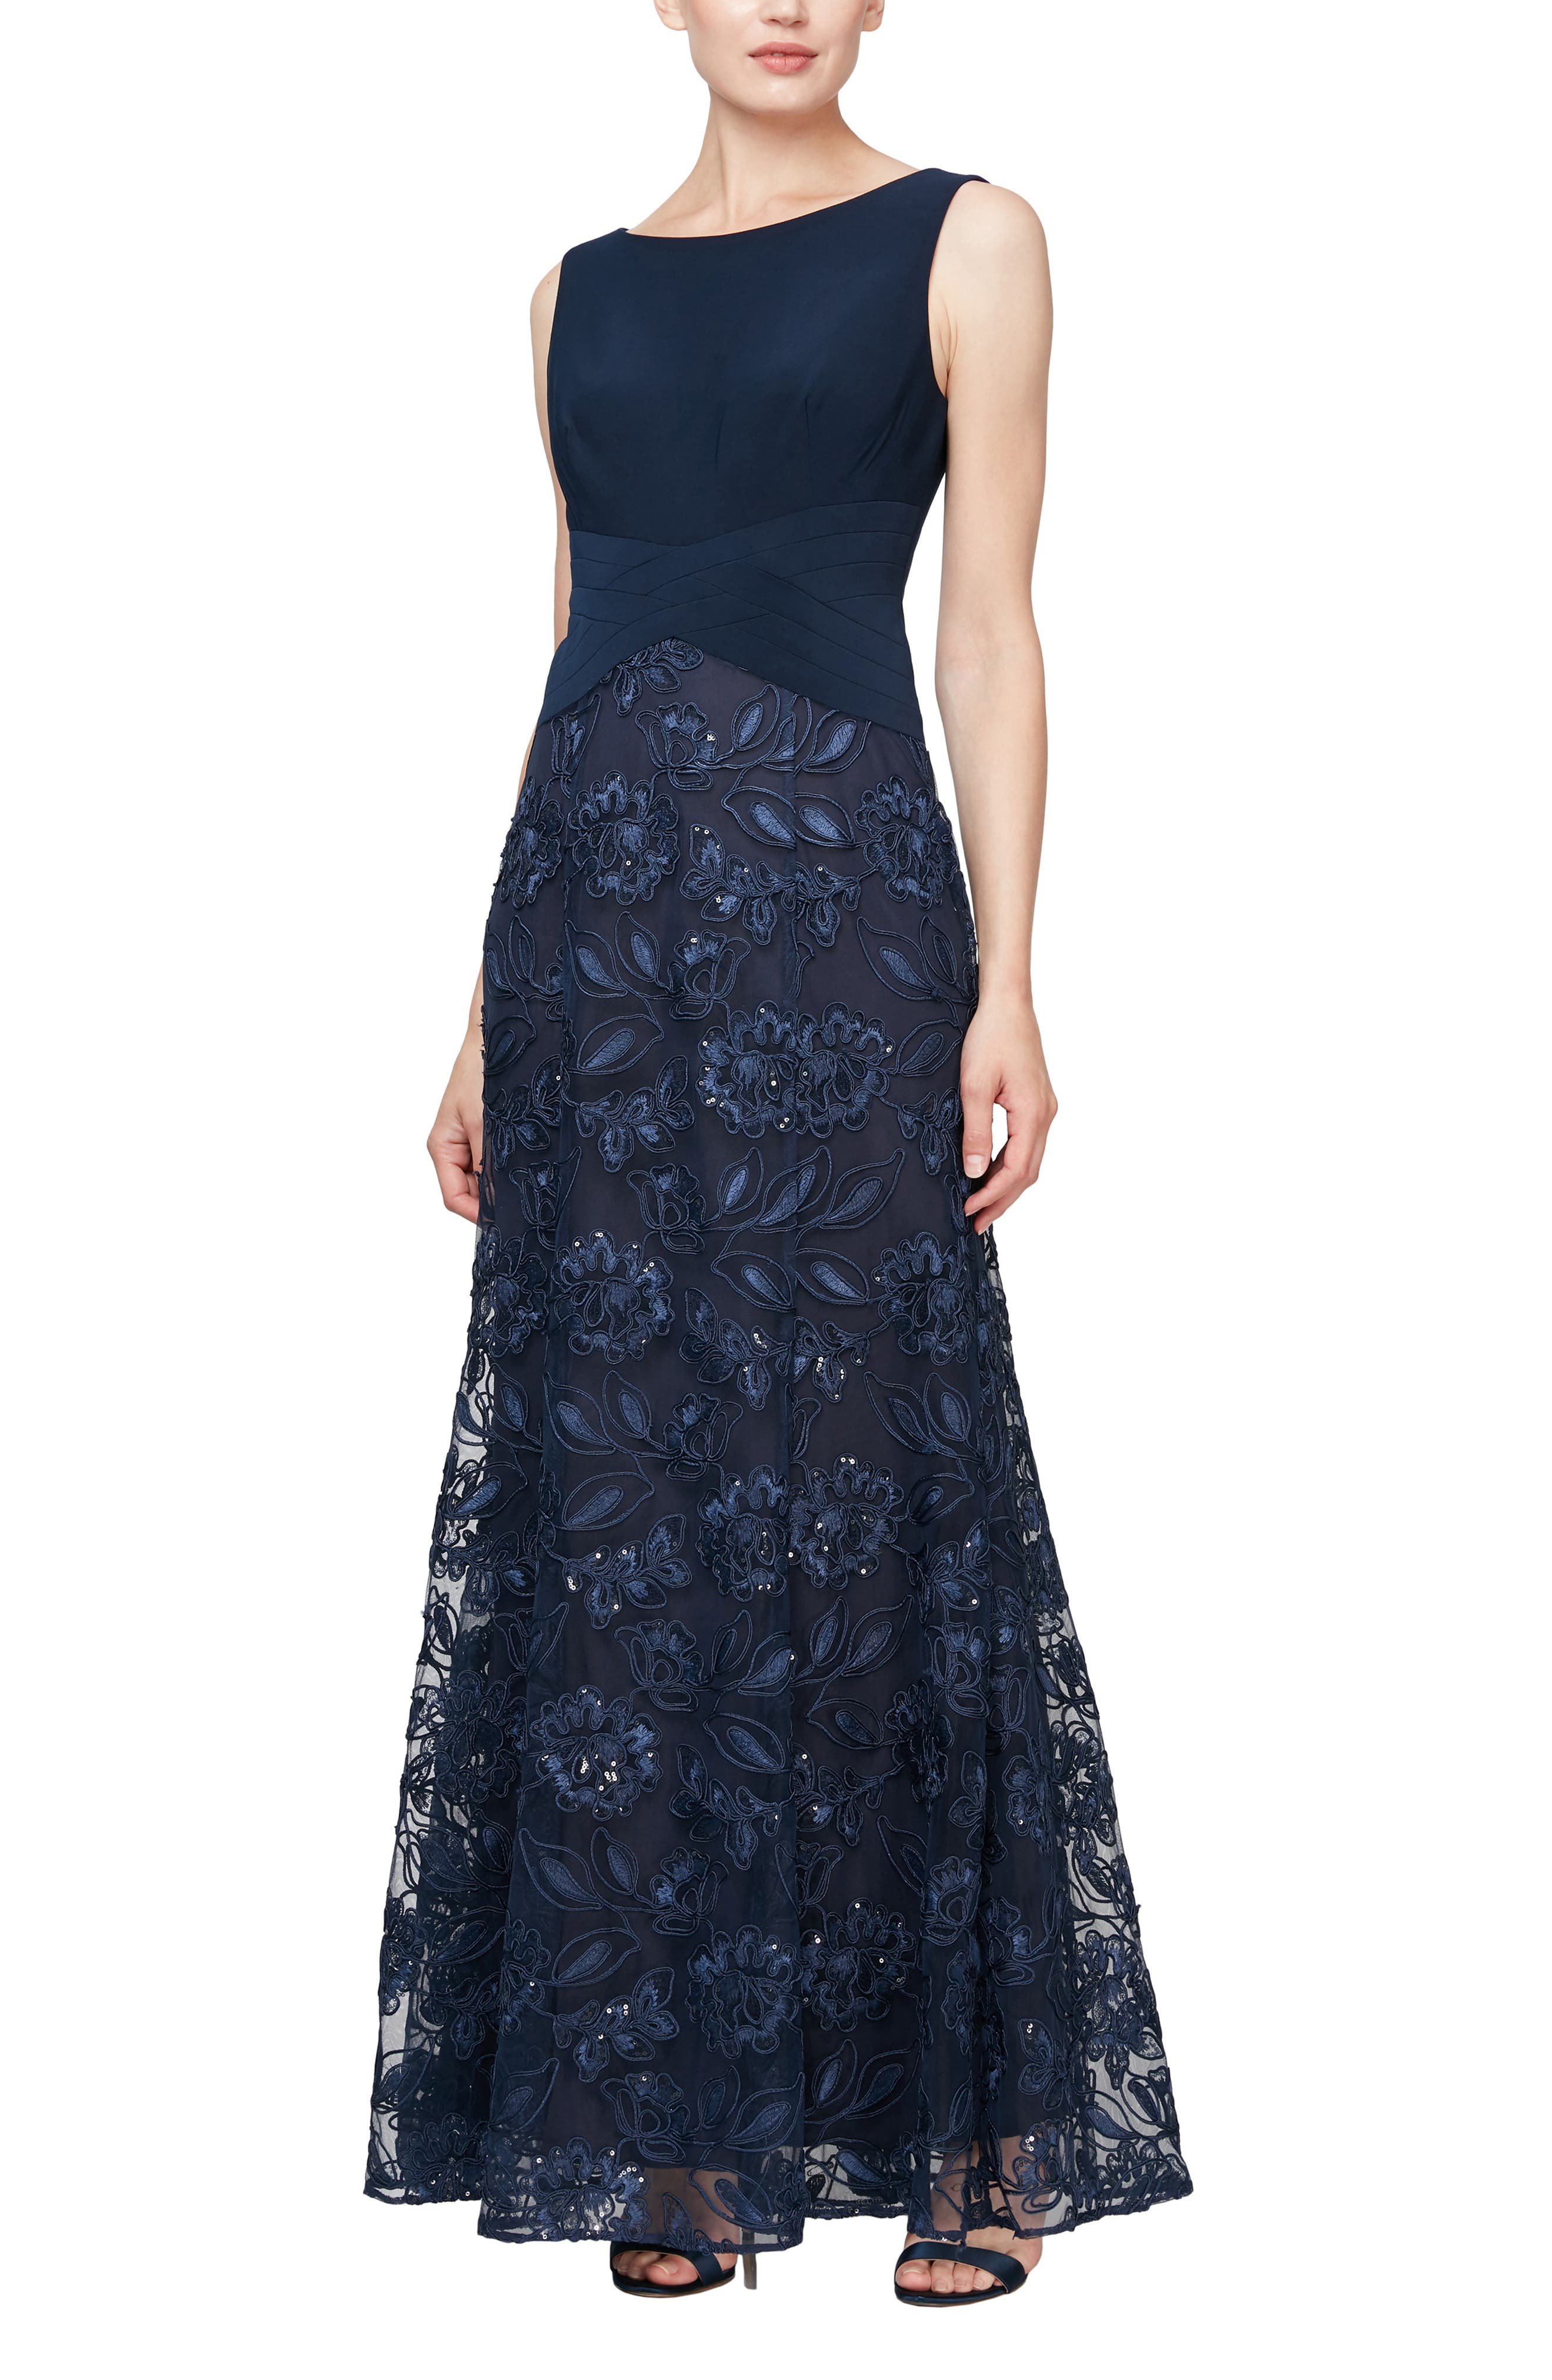 Light up the night in this glamorous sleeveless gown styled with a flattering textured waistline and a twinkling beaded skirt. Style Name: Alex Evenings Sleeveless Beaded Gown. Style Number: 6067776. Available in stores.